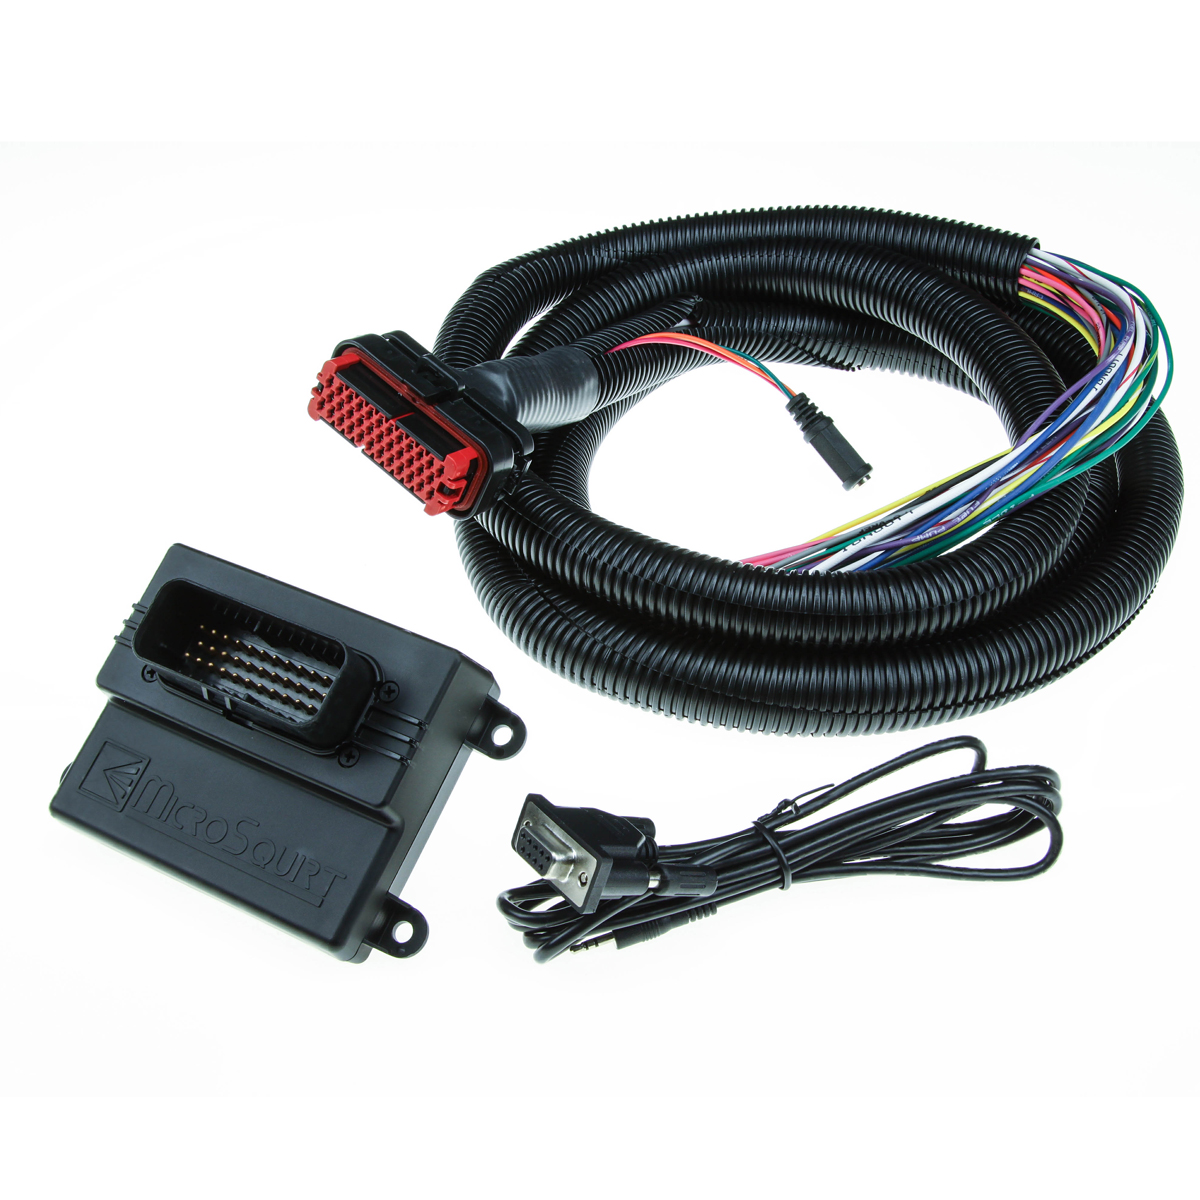 microsquirt engine management system with 2 4m wiring harness - zonning's